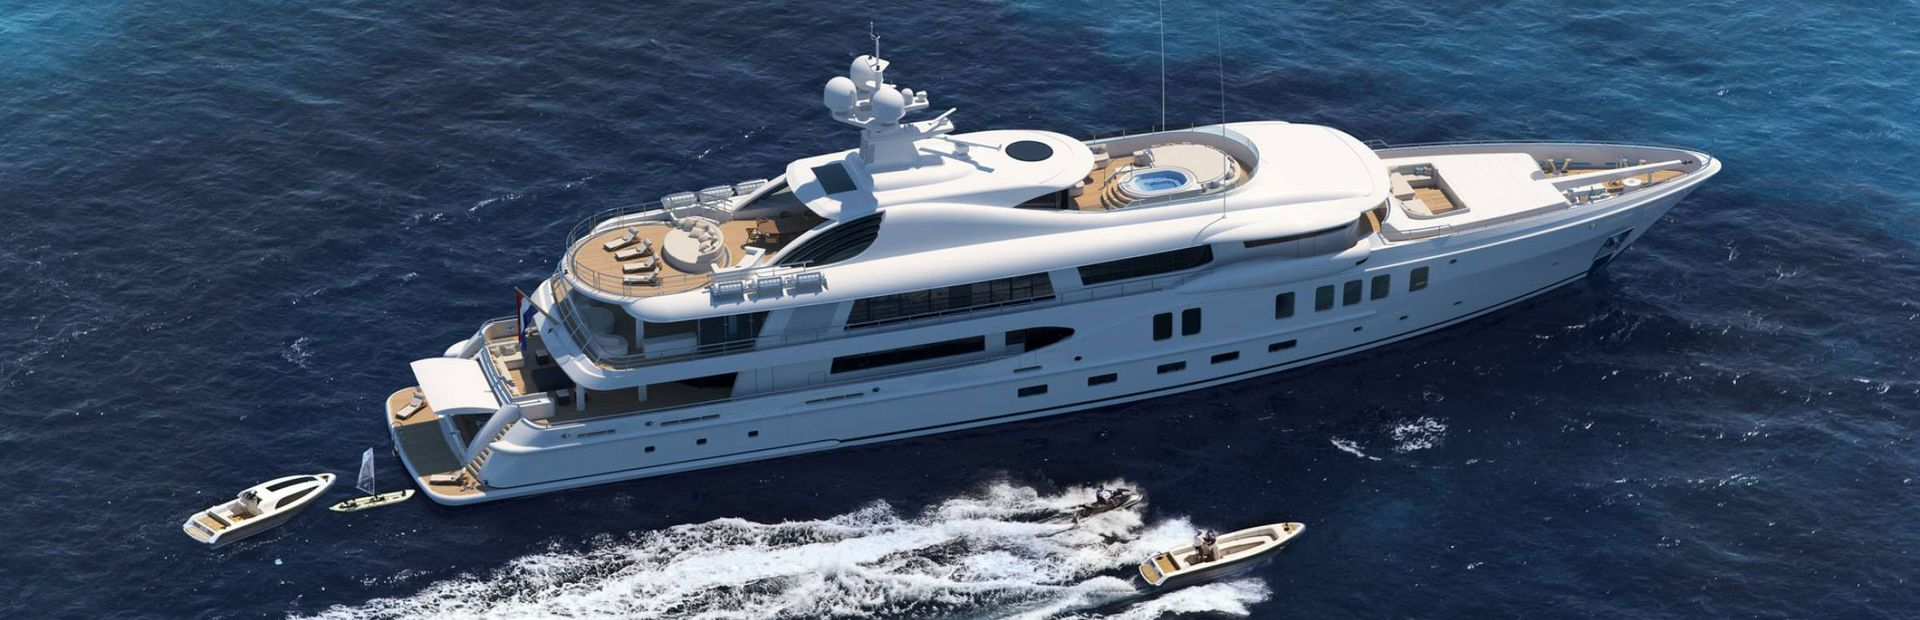 Amels 212 Yacht Charter